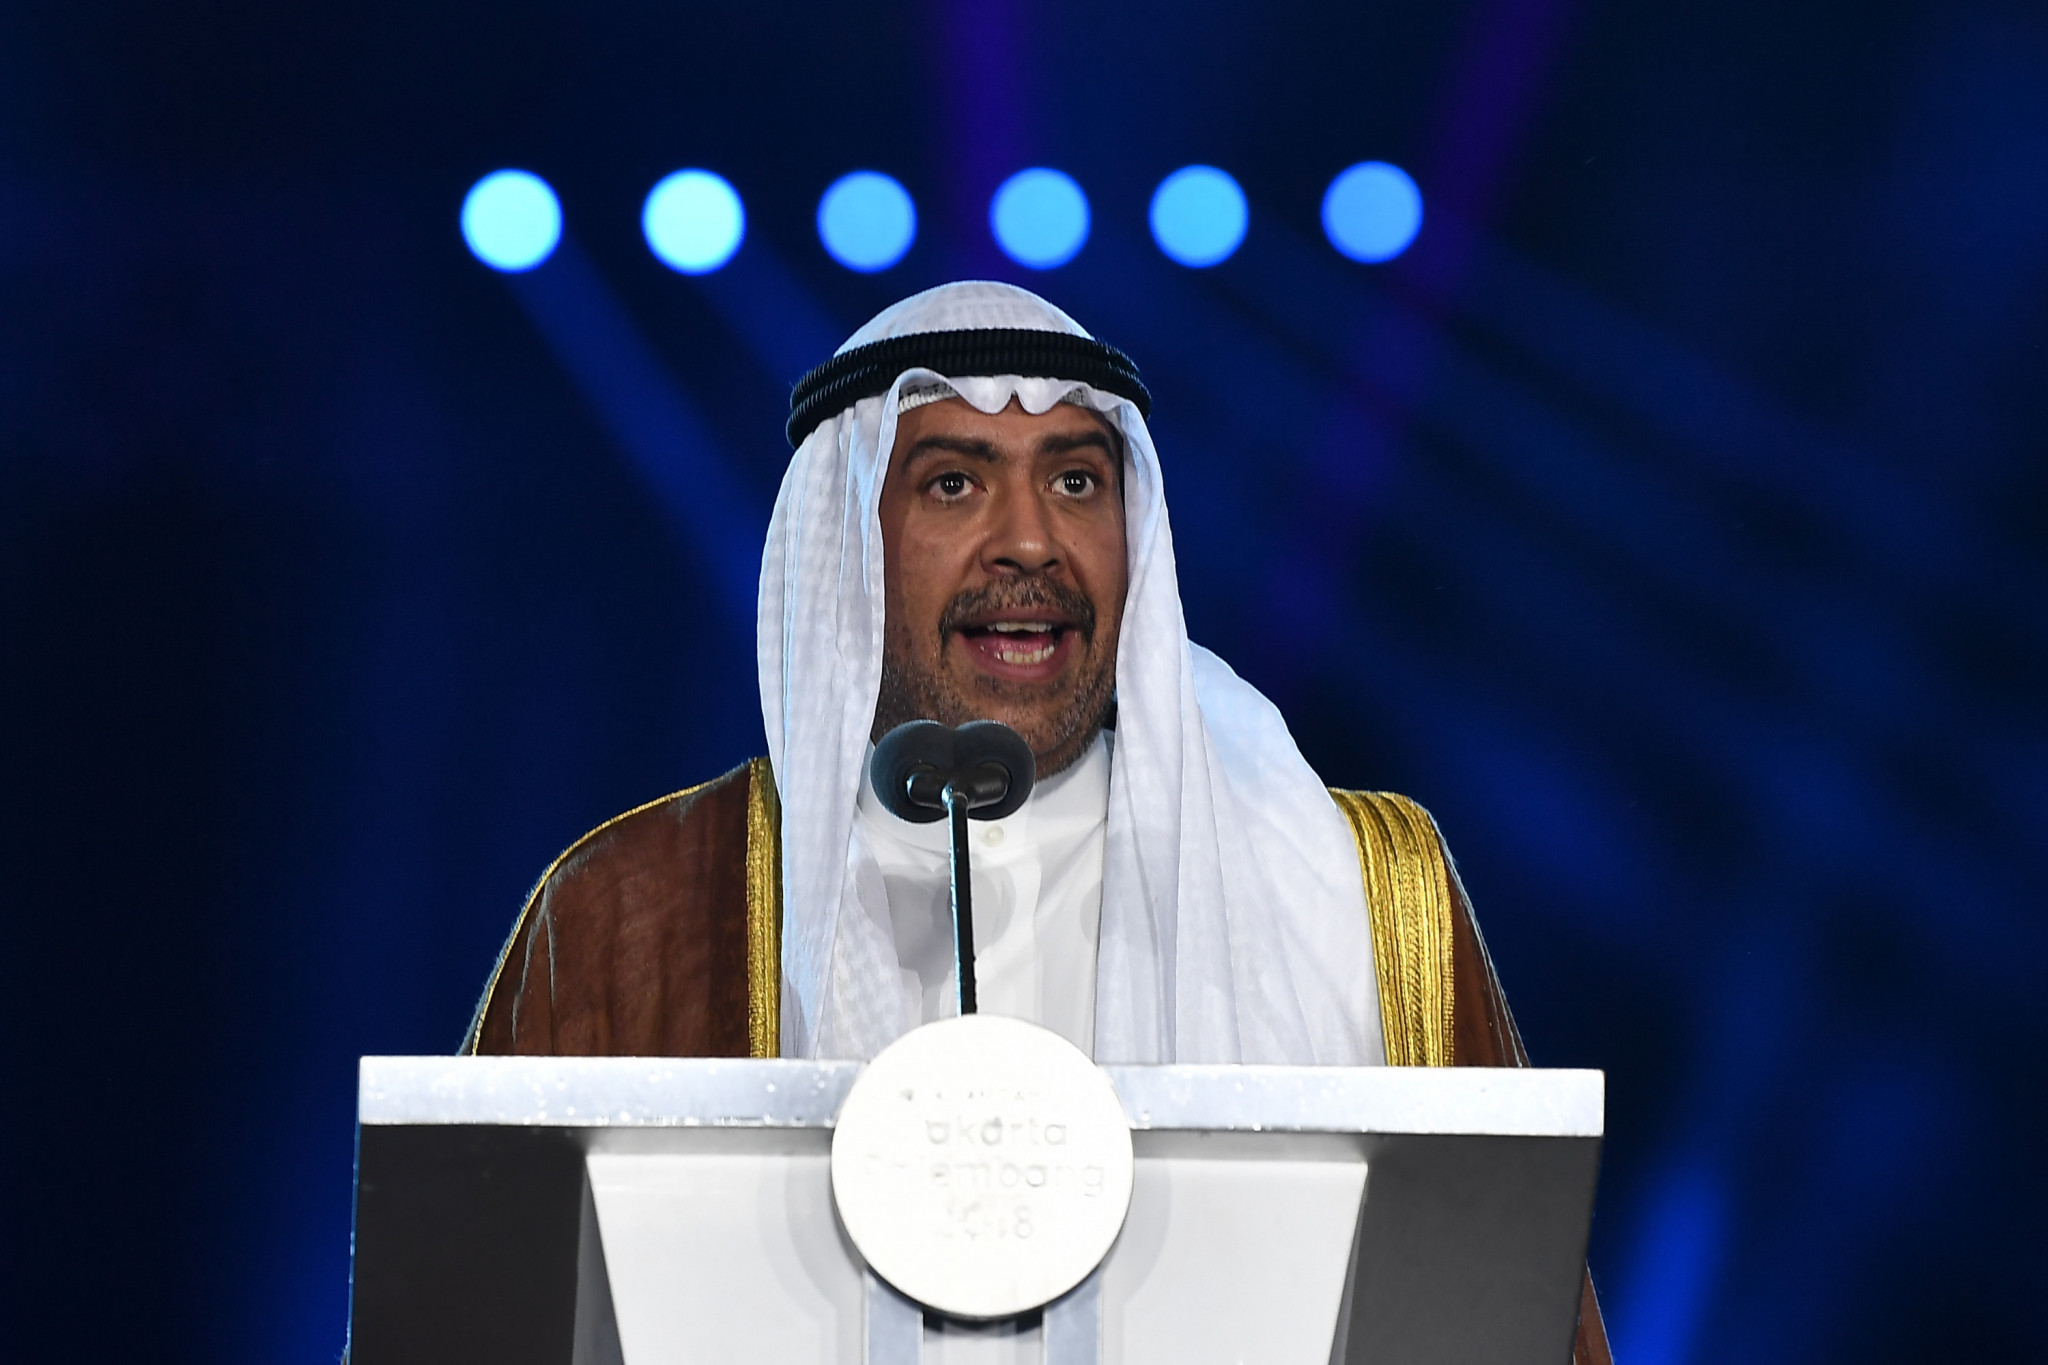 ANOC President Sheikh Ahmad Al-Fahad Al-Sabah claimed the establishment of the Ethics Commission by the organisation demonstrated good governance ©Getty Images